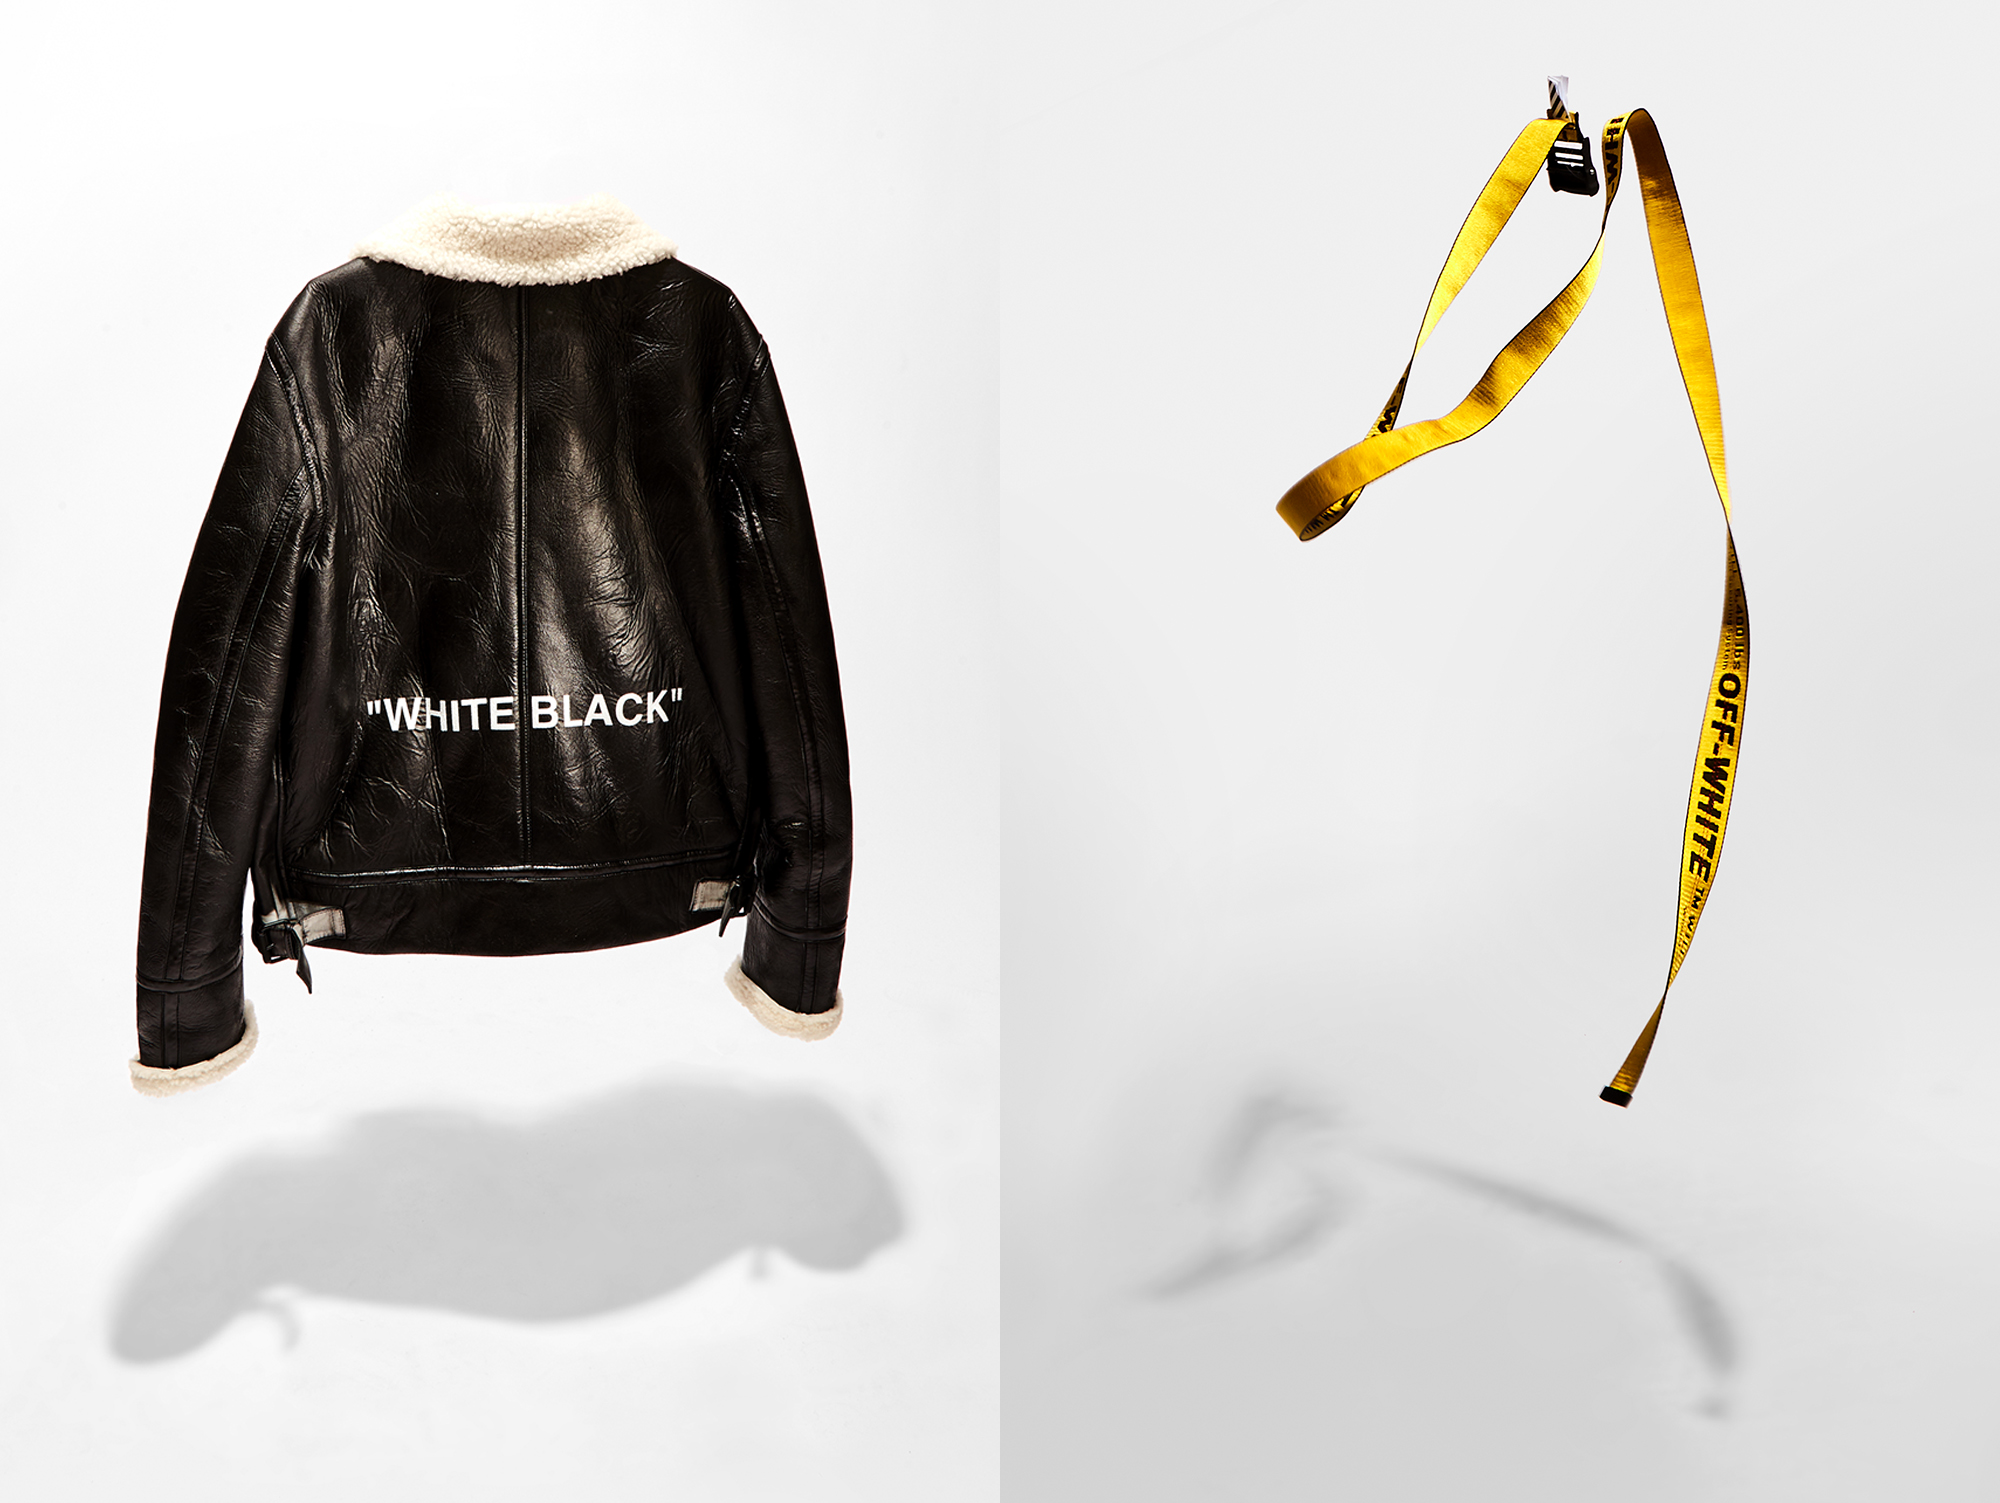 Off-White leather jacket and belt